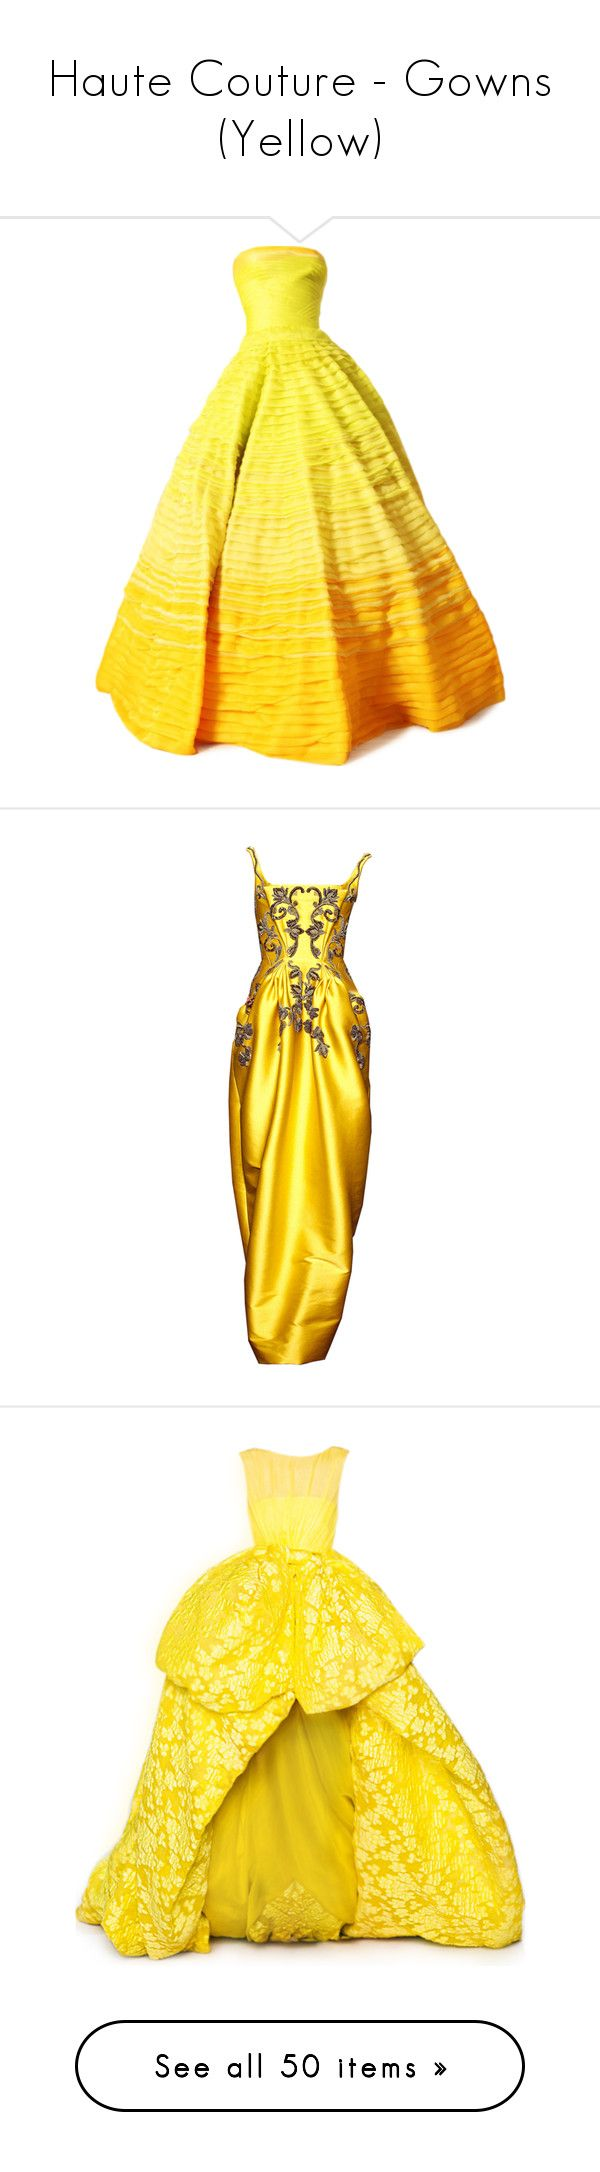 """""""Haute Couture - Gowns (Yellow)"""" by giovanna1995 ❤ liked on Polyvore featuring yellow, gown, hautecouture, edited, dresses, gowns, long dress, satinee, couture gowns and yellow ball gown"""